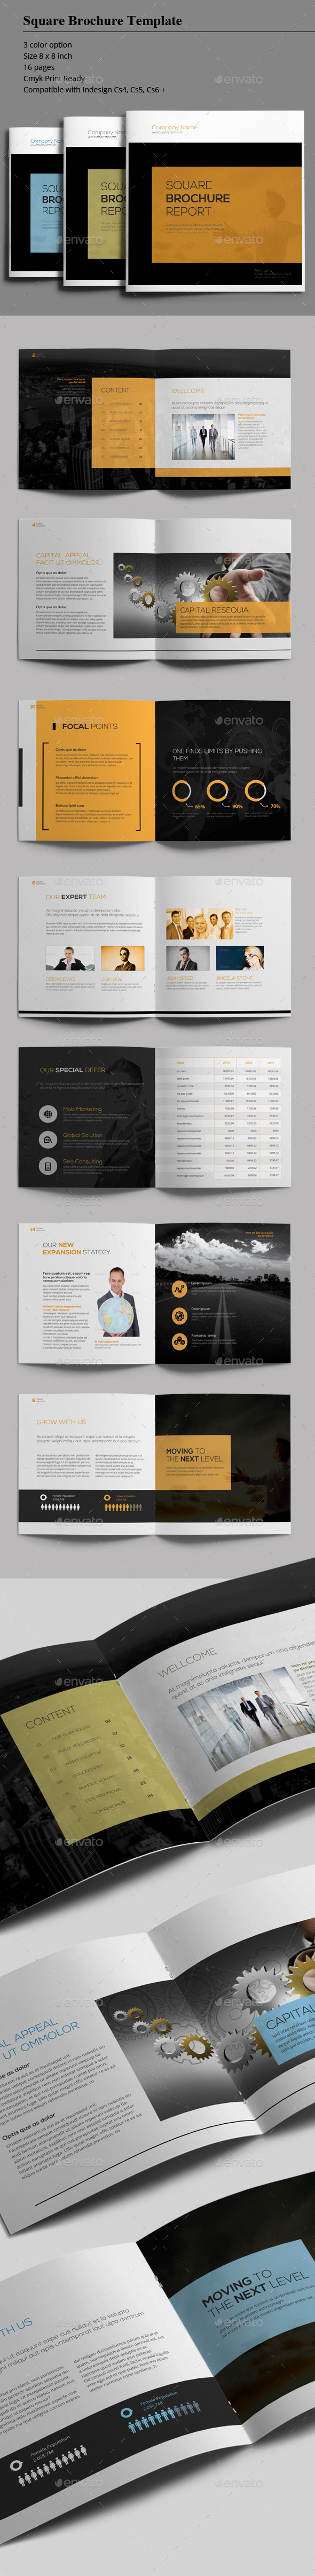 GraphicRiver Square Brochure Report 8801966